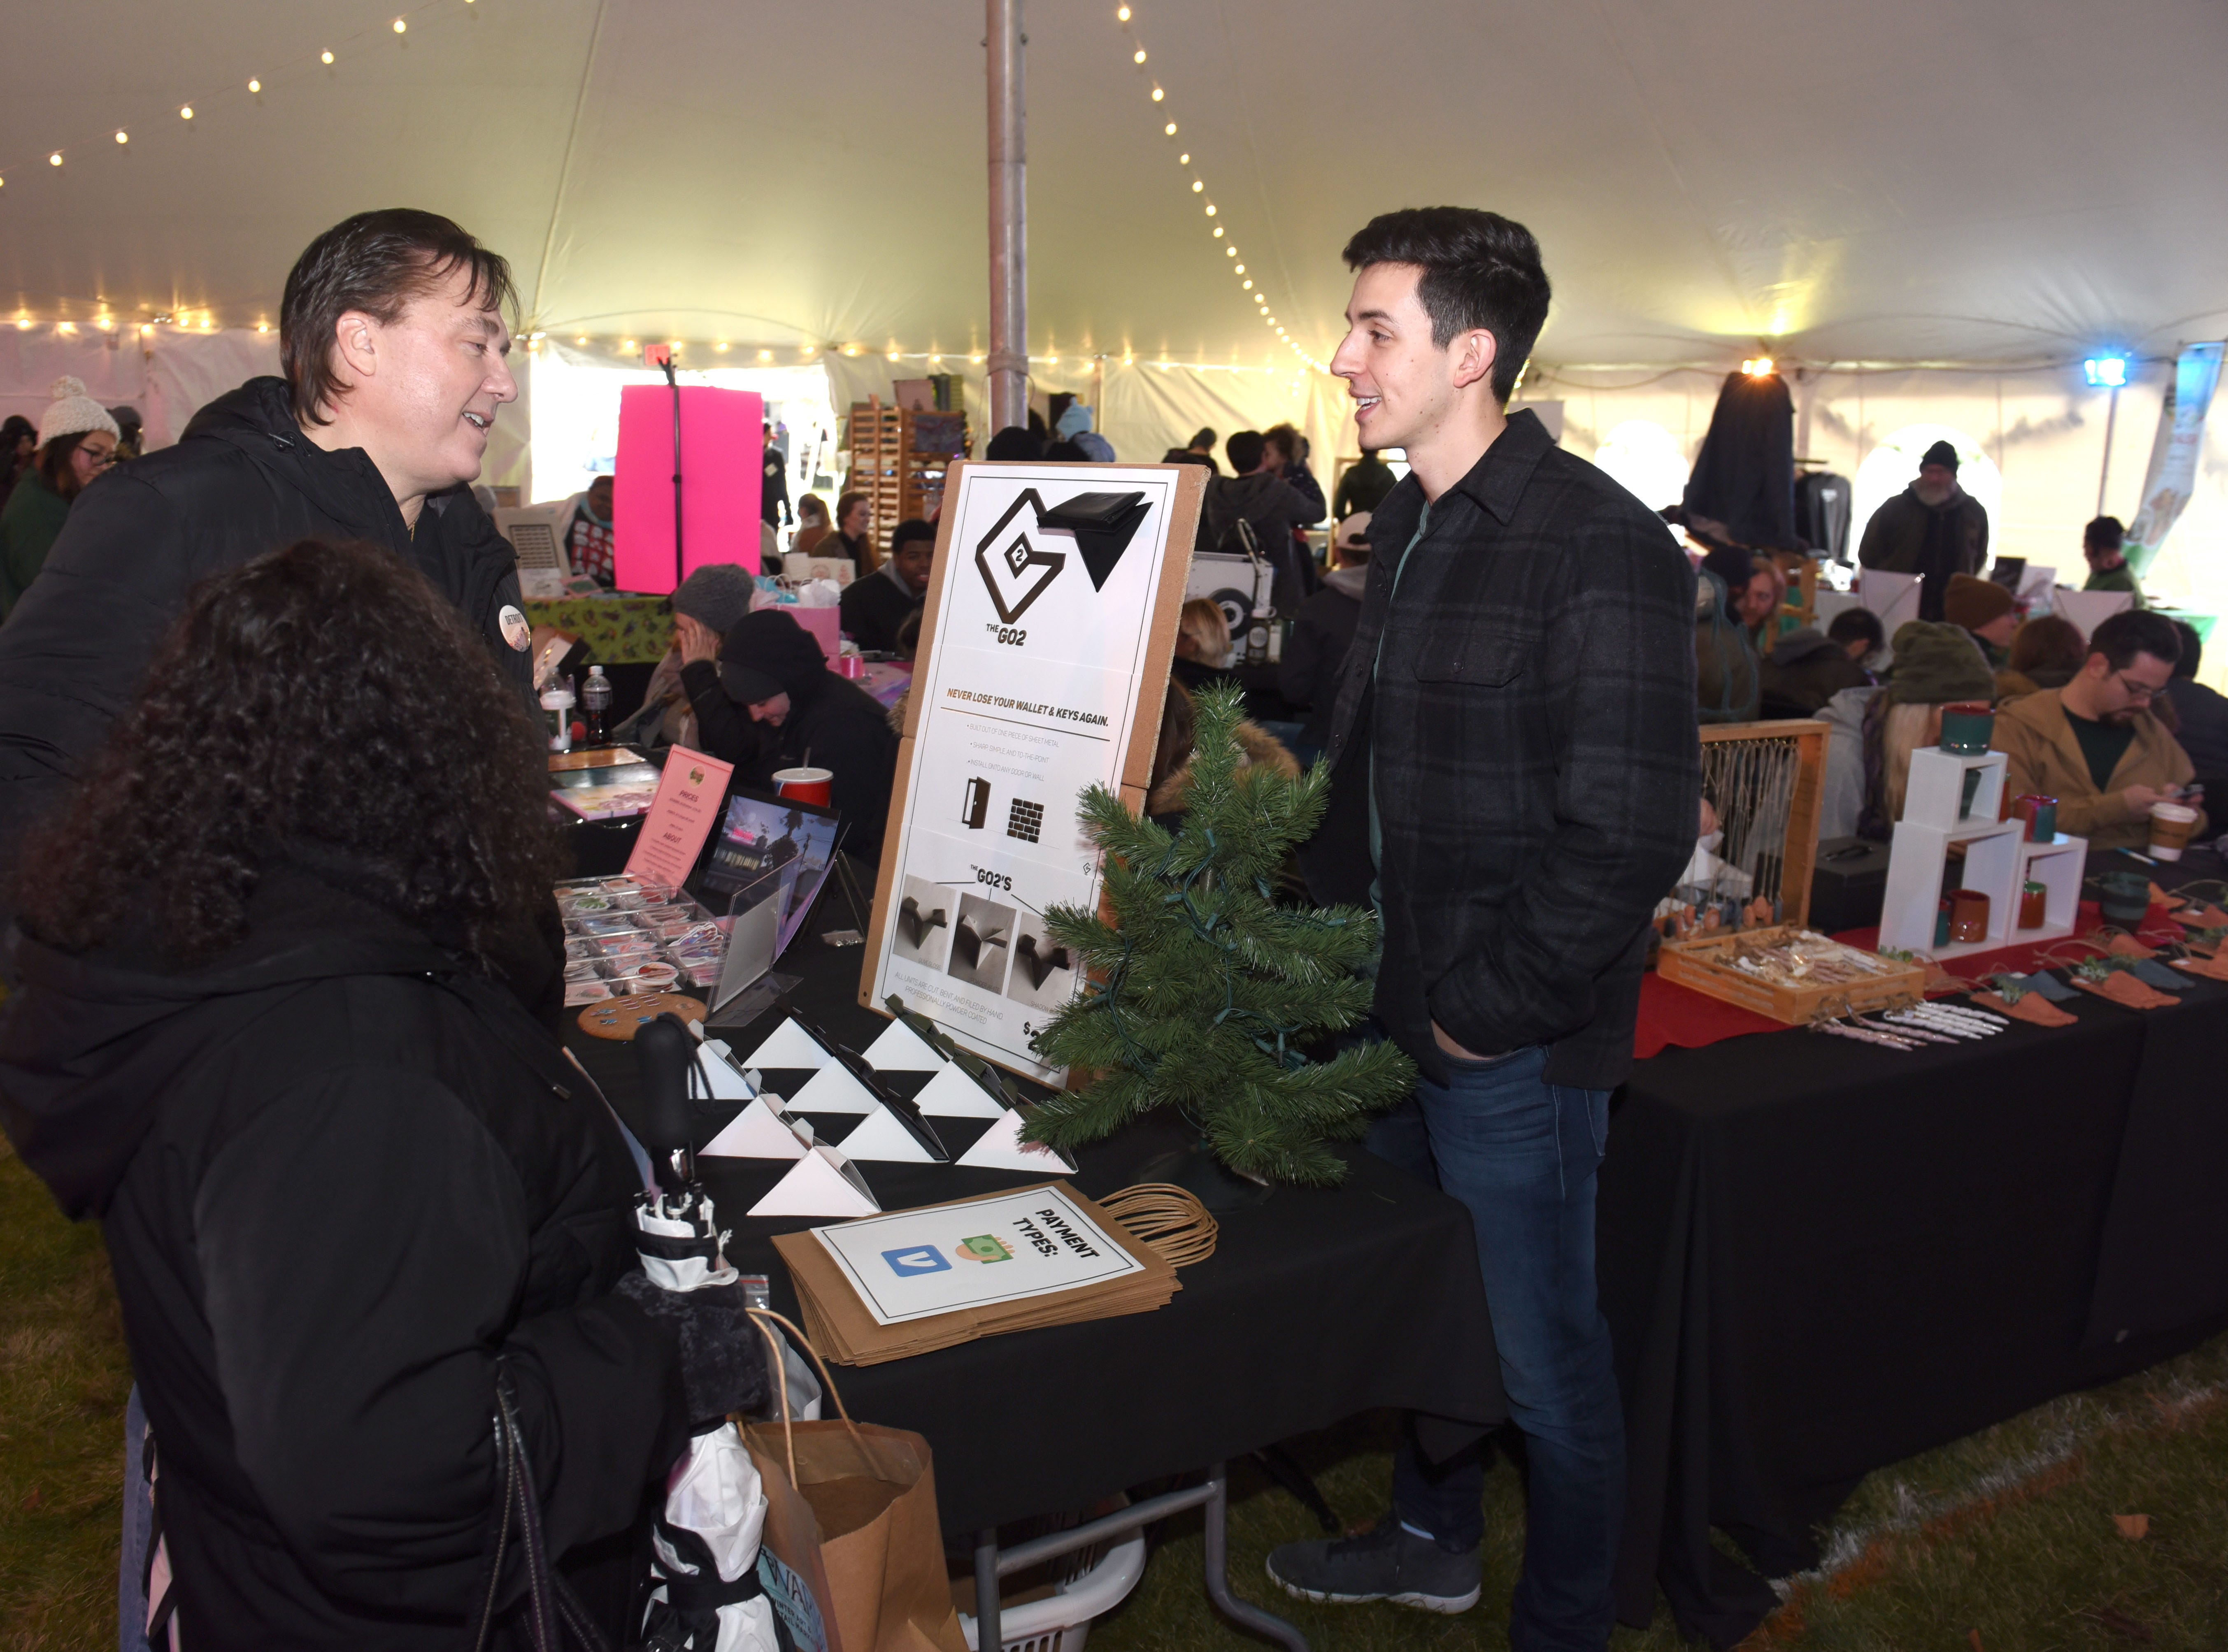 Wayne State University student Jacob Joye (right) speaks to customers at the Winter Art and Retail Market  about his GO2's invention during Noel Night.